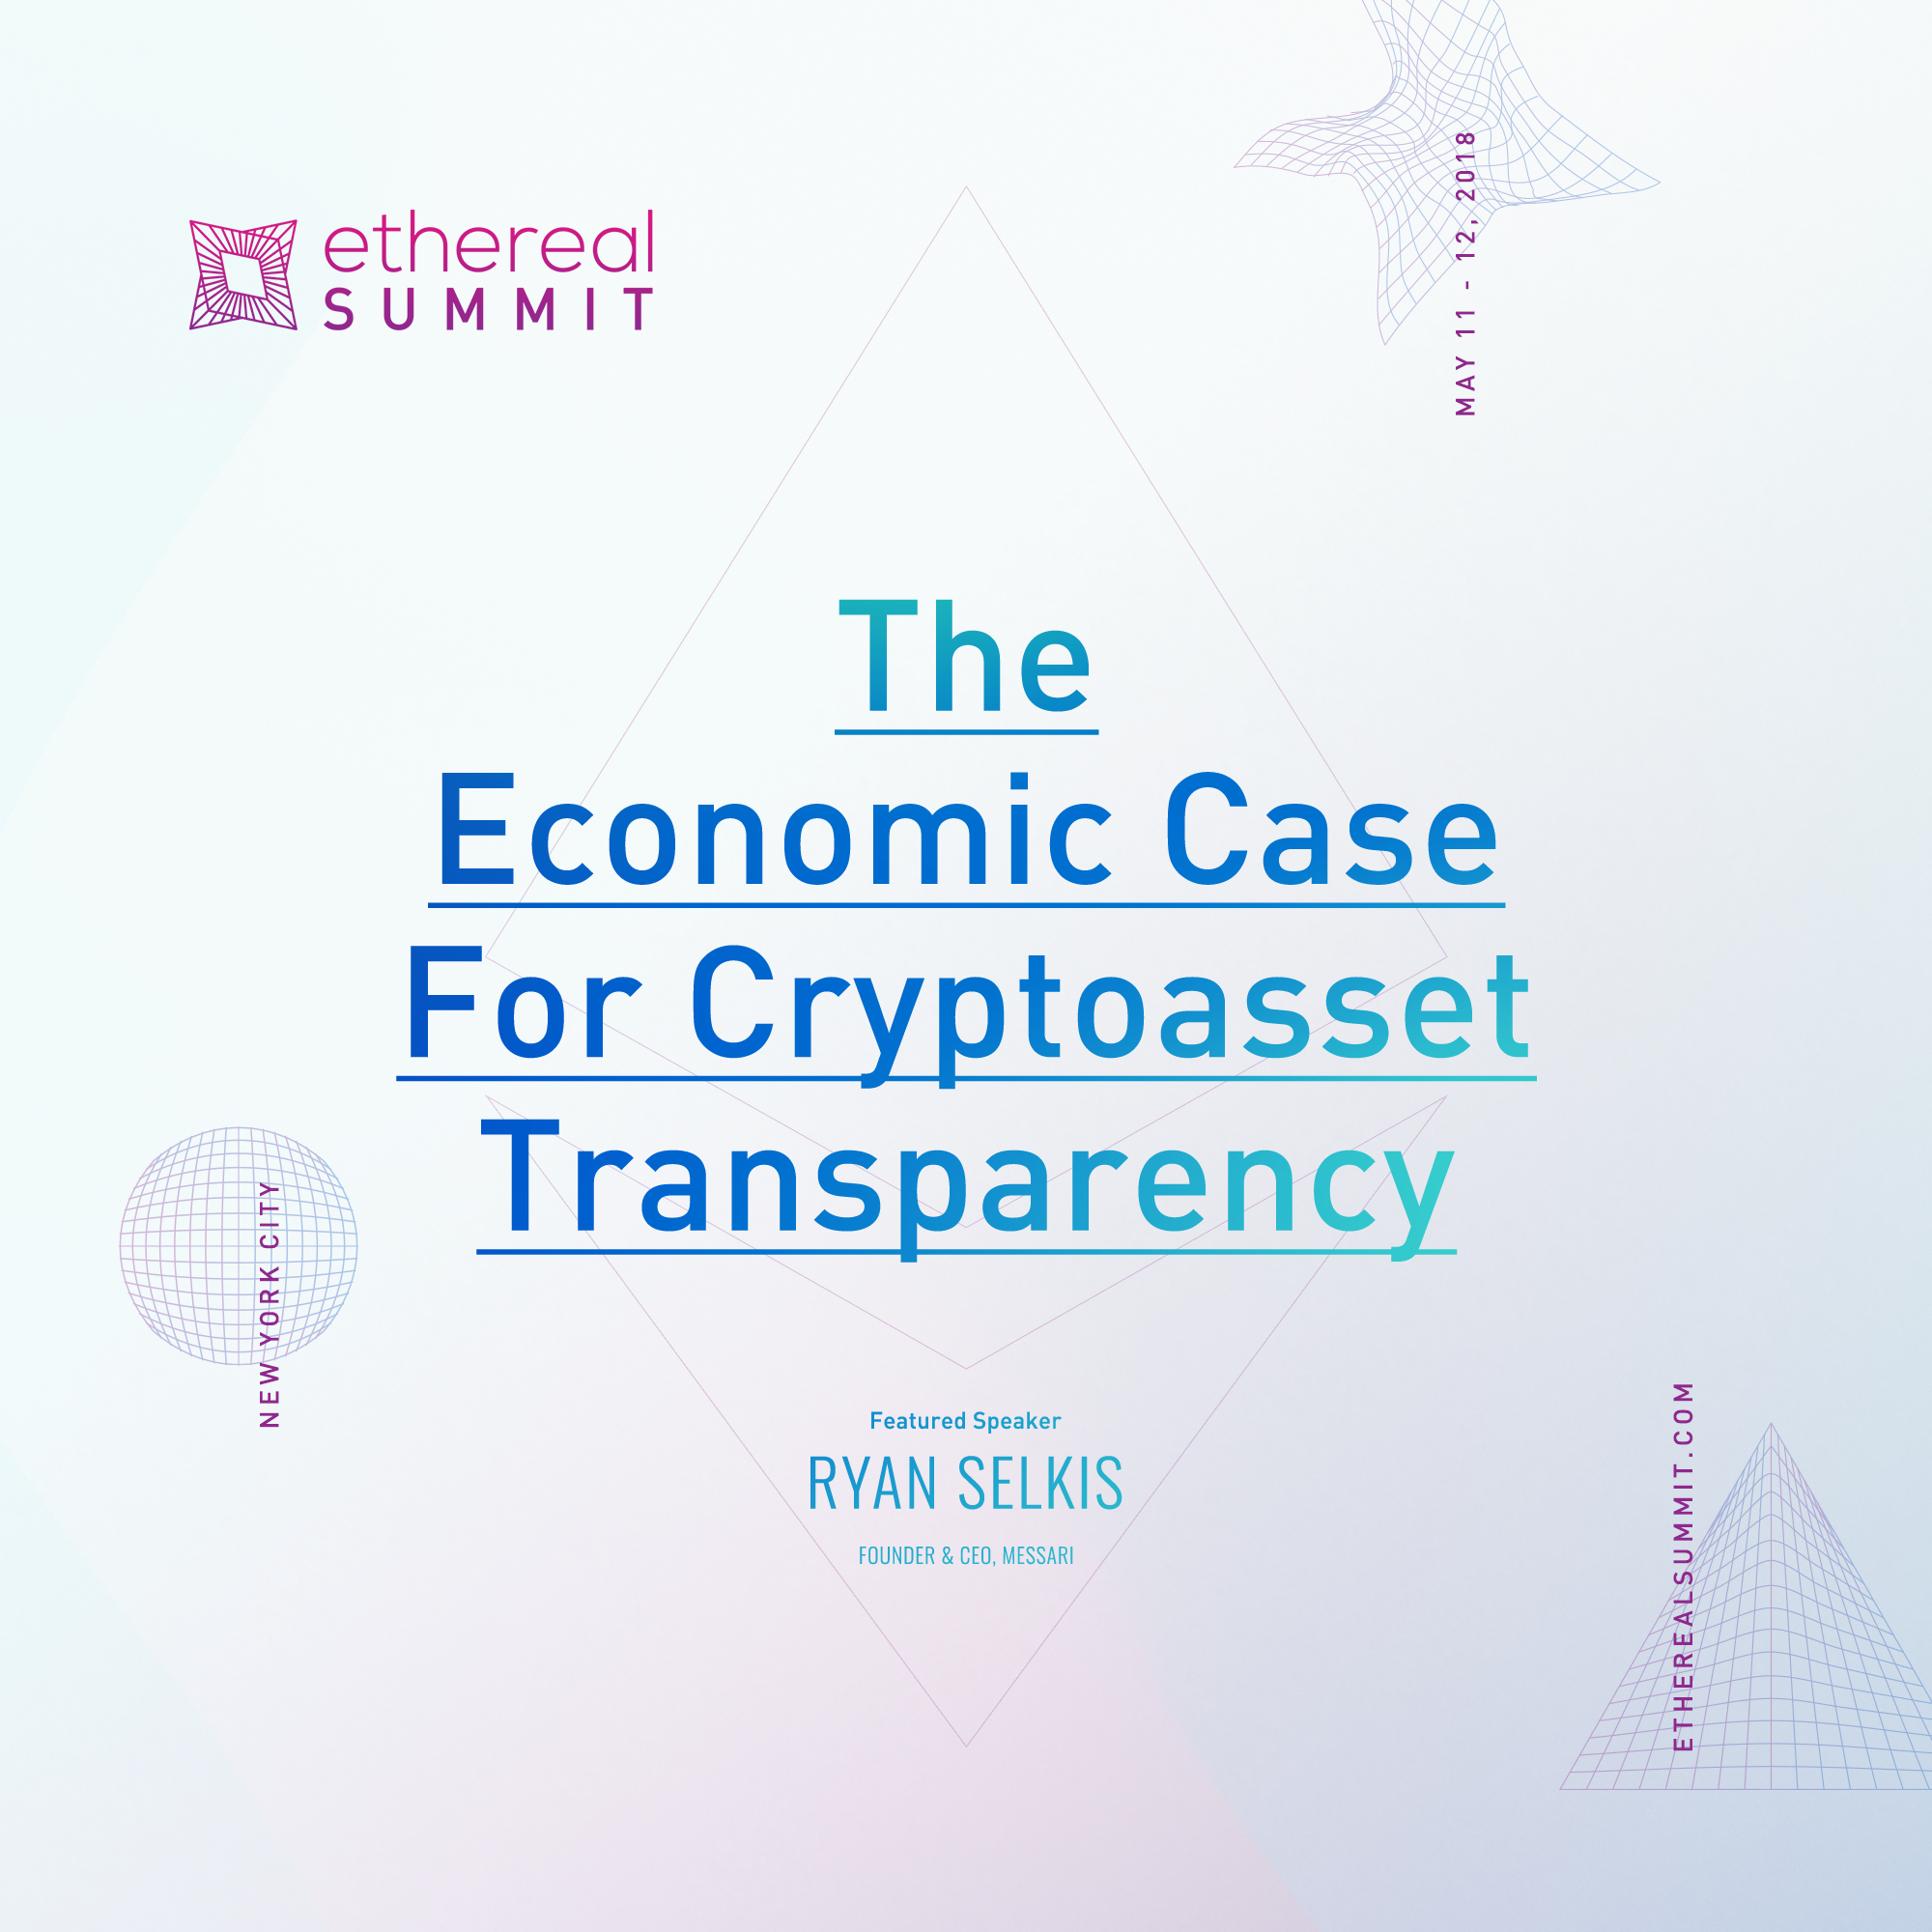 The Economic Case For Cryptoasset Transparency